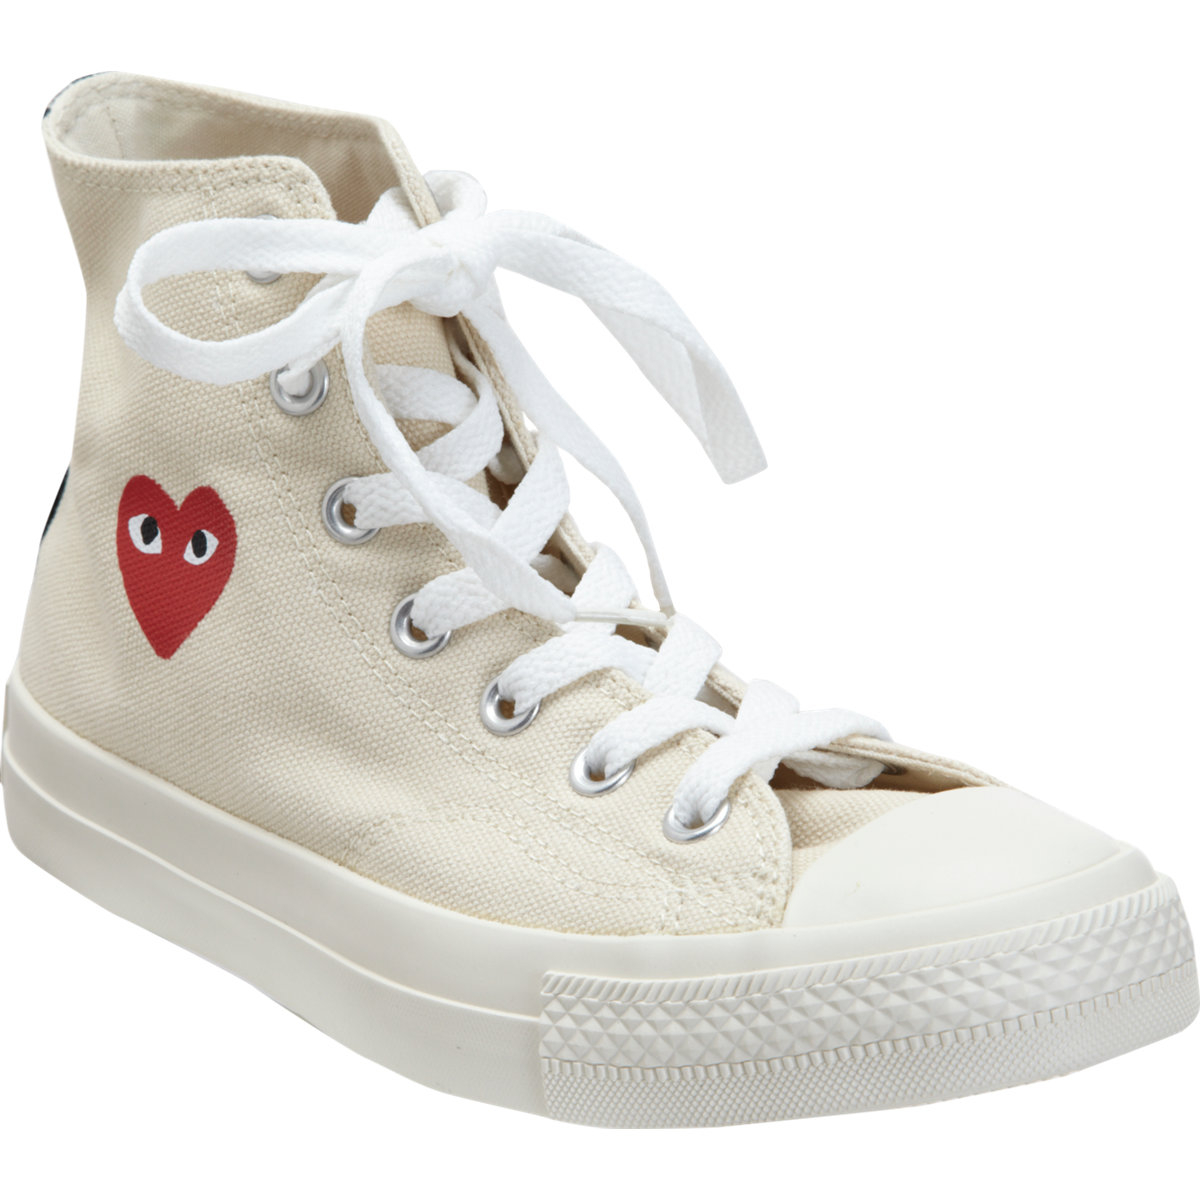 2e7afb2e64e Lyst - Play Comme des Garçons Play Chuck Taylor All Star Canvas High ...